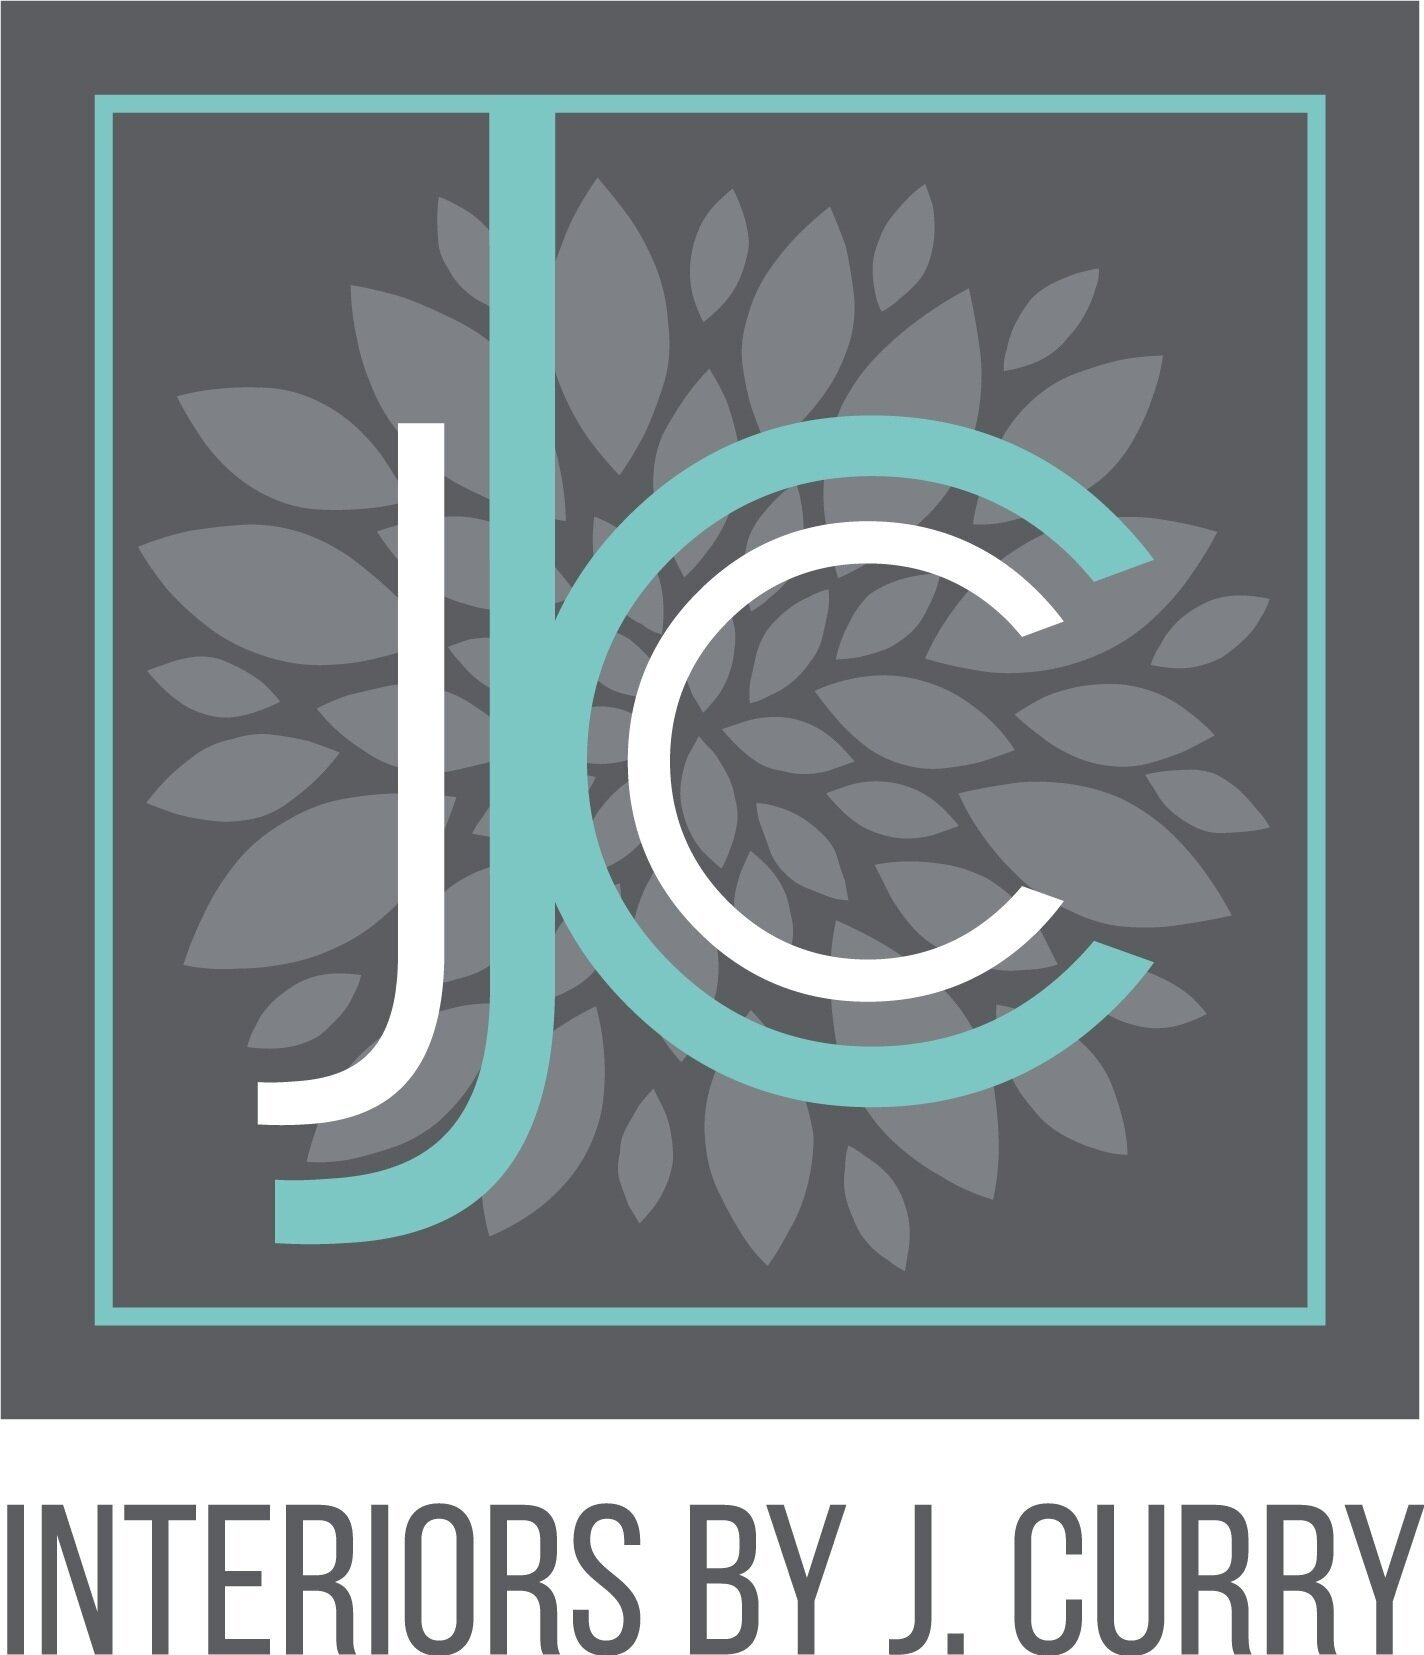 Interiors by J.Curry LLC